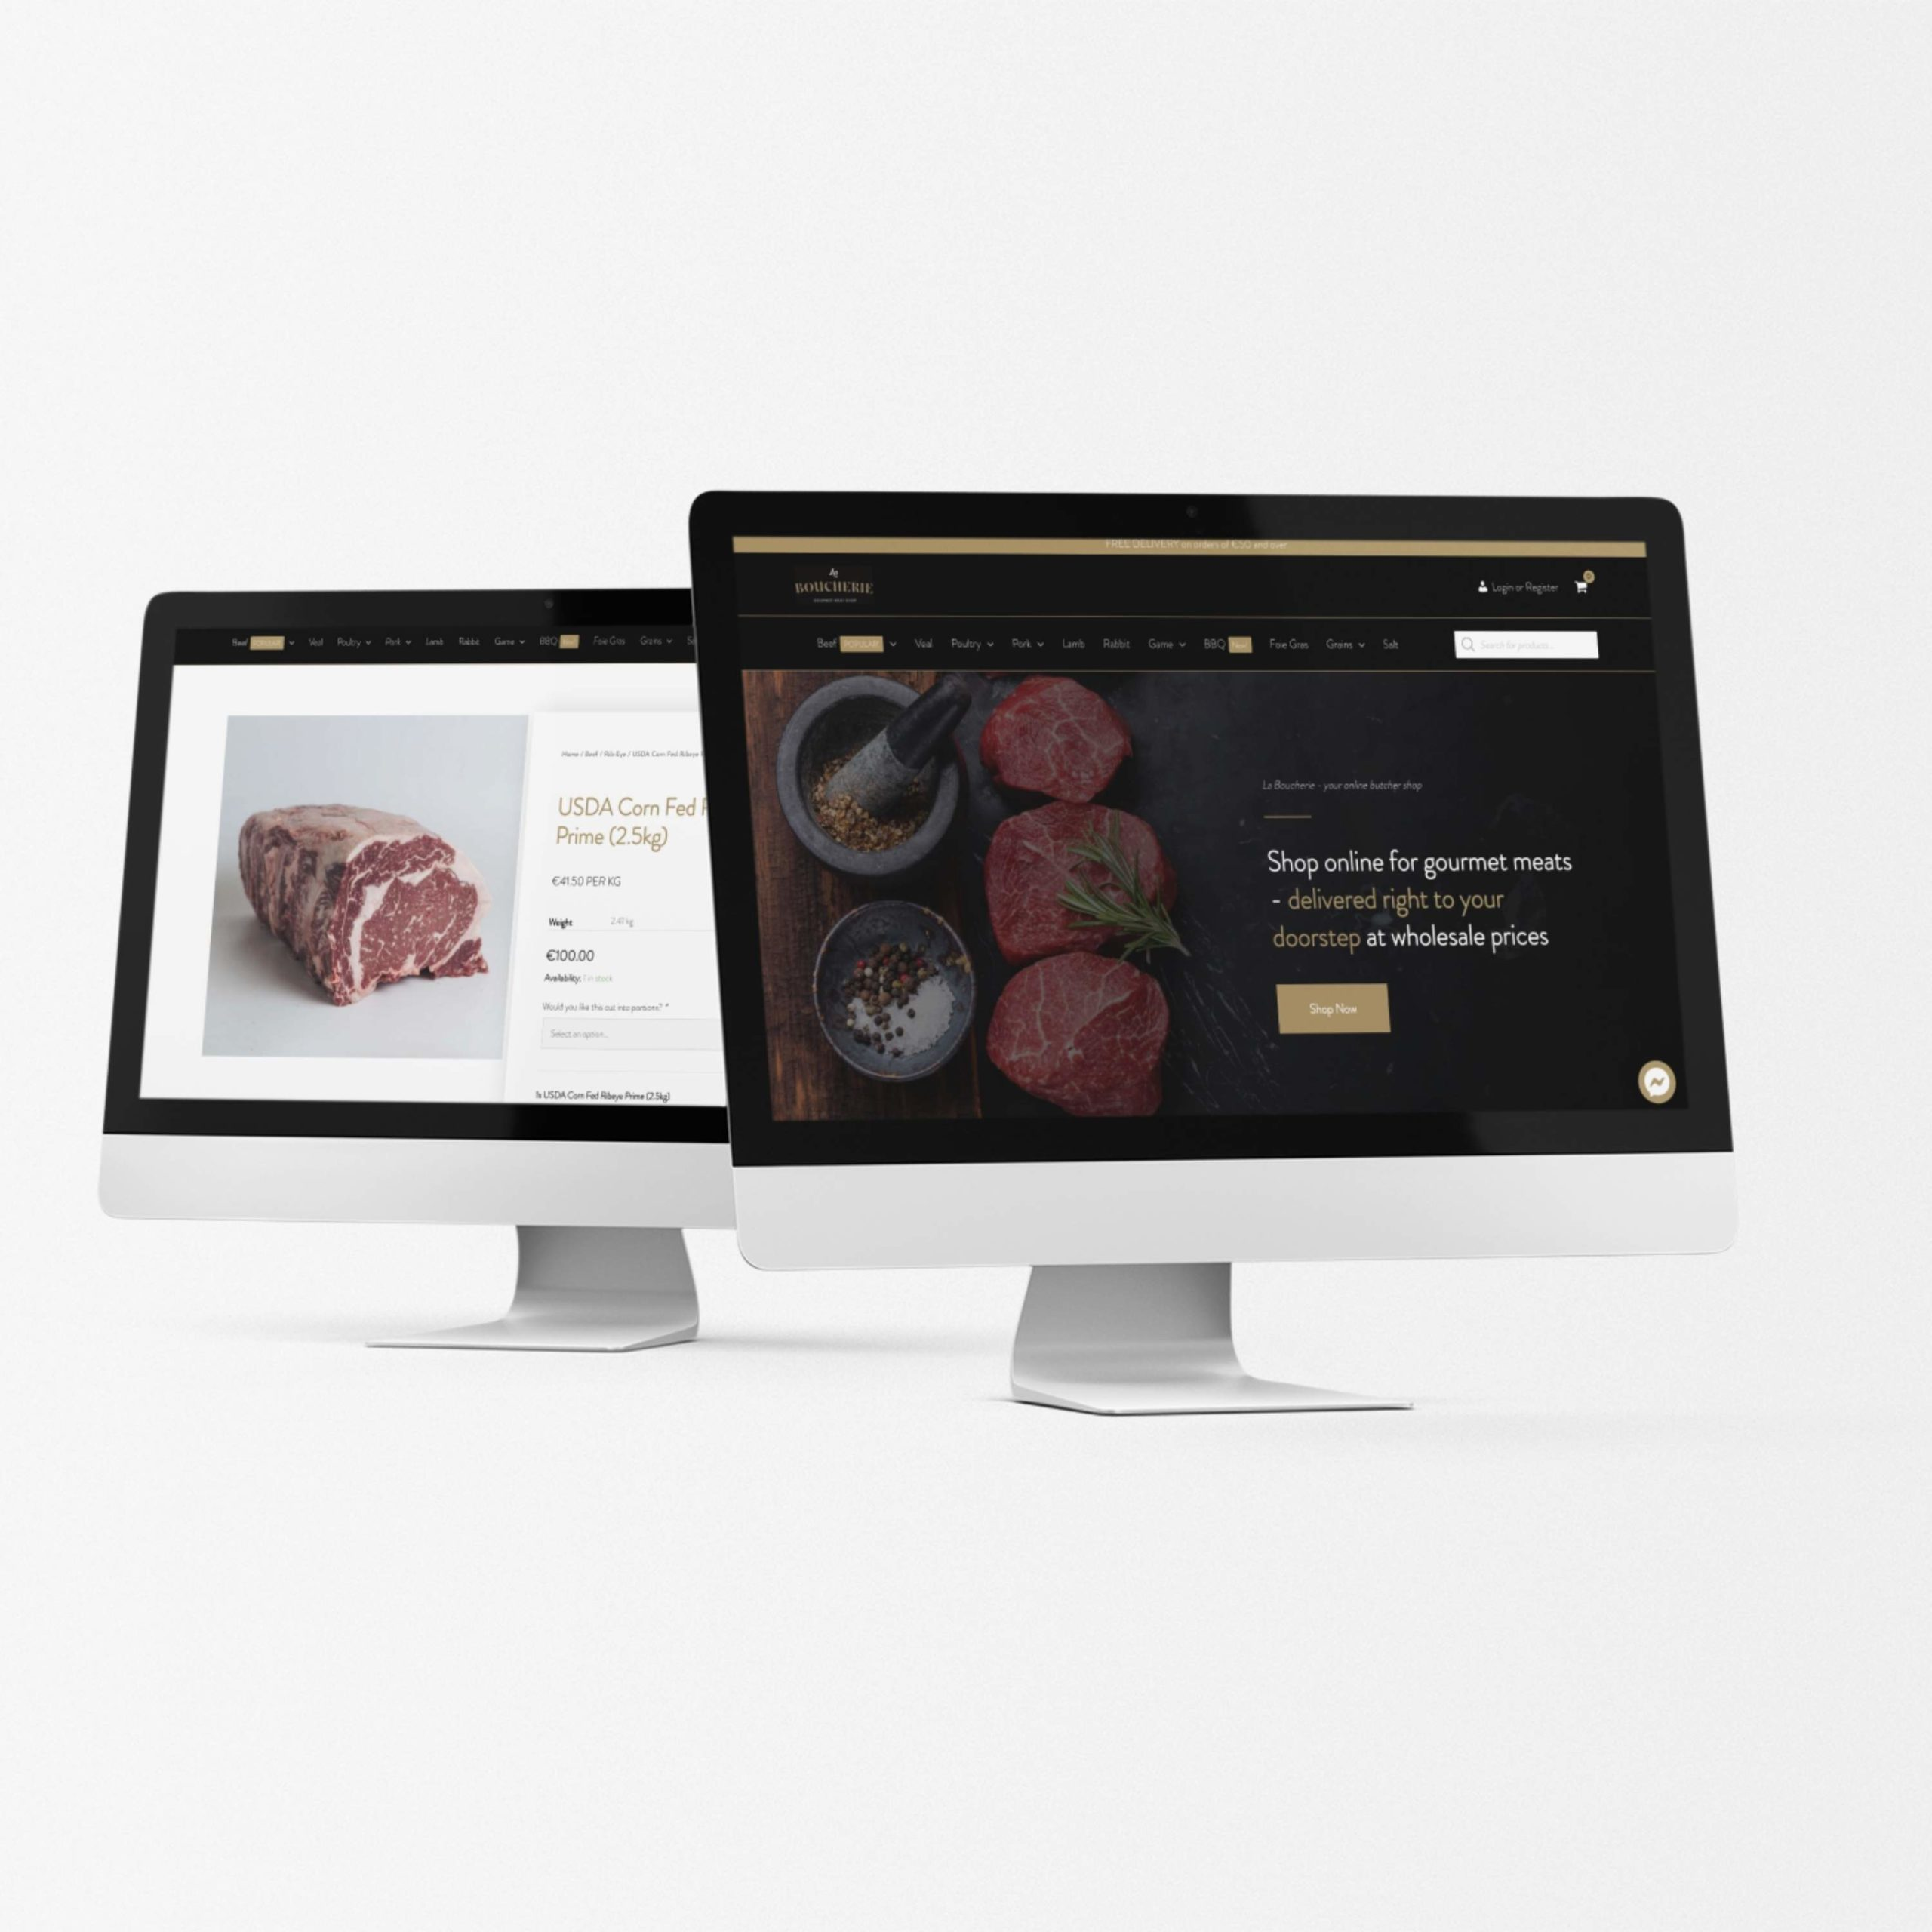 Online shop design and development for La Boucherie